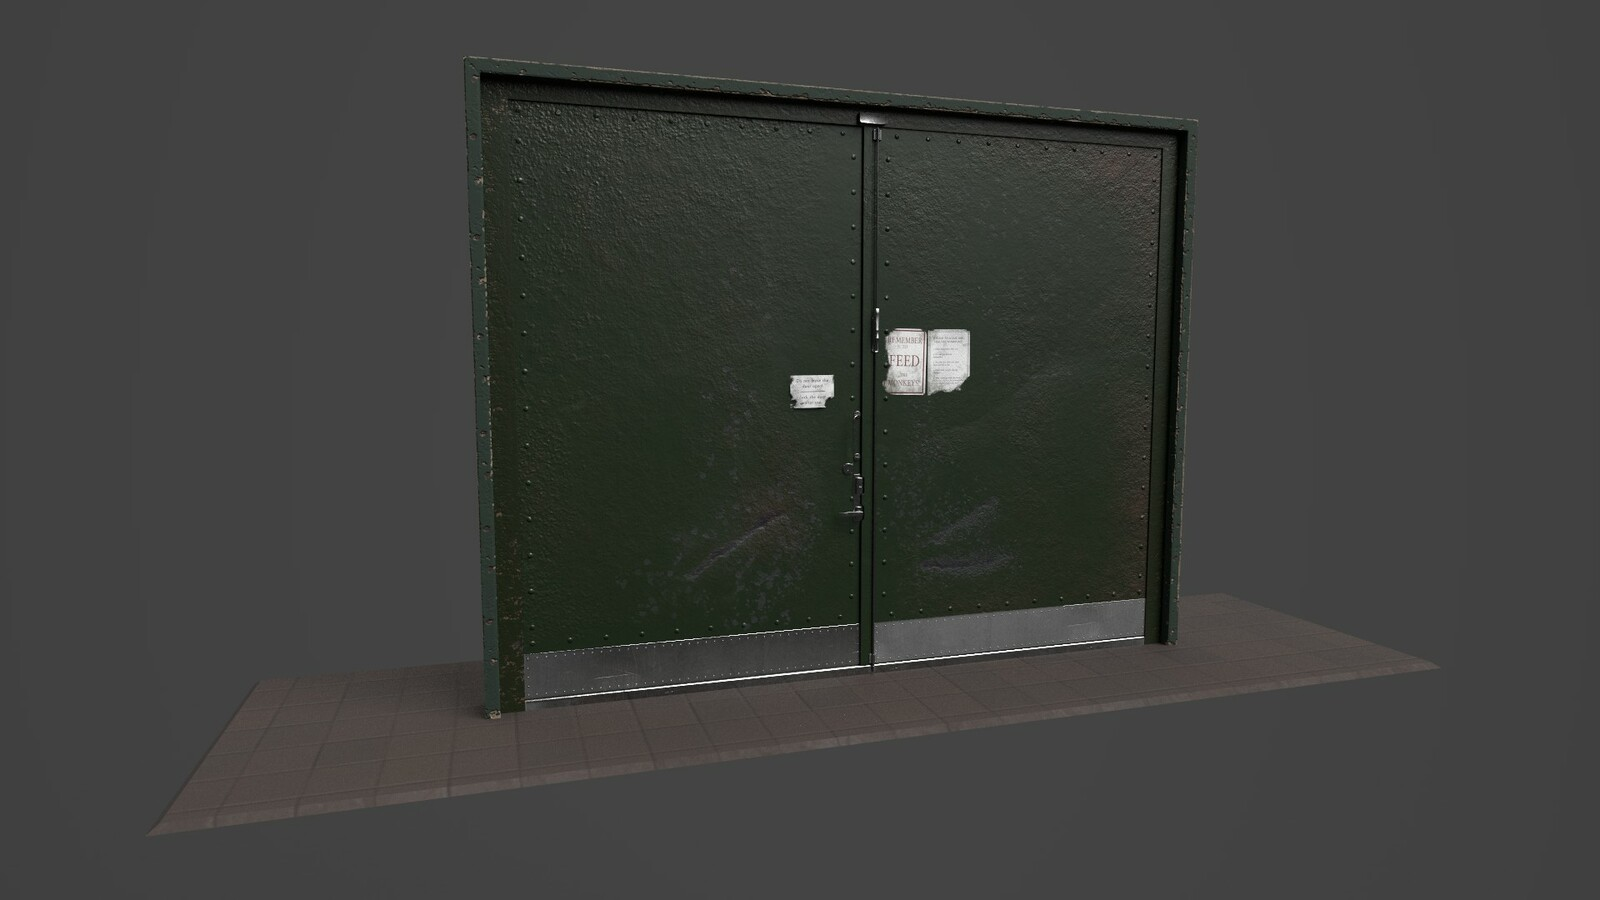 Reinforced laboratory doors